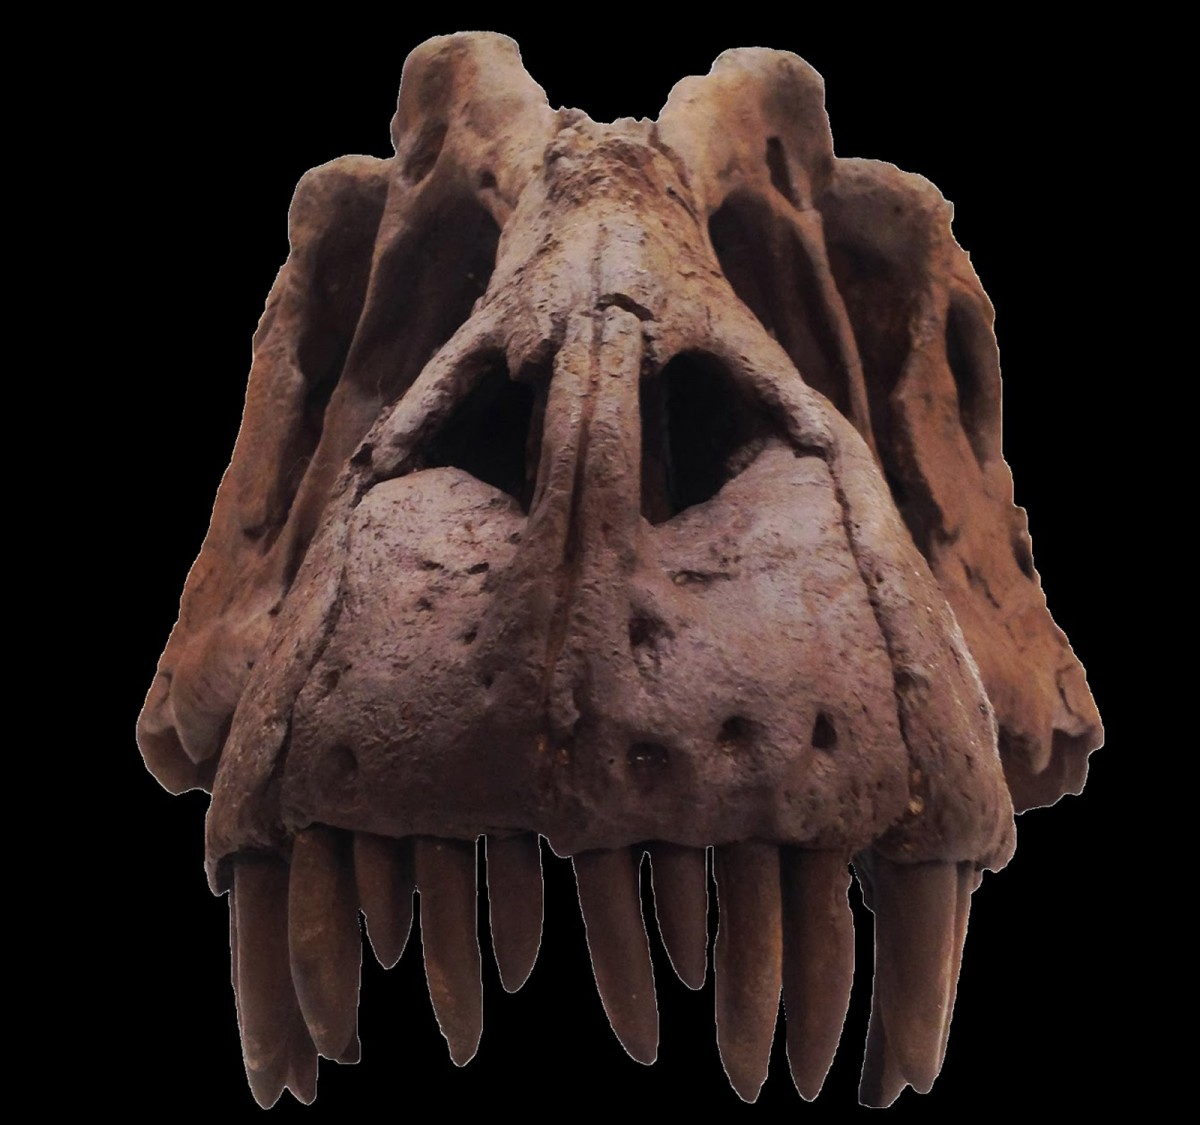 Lythronax argestes, reconstructed scull containing original fossil. Photo: Mark Loewen, NHMU.